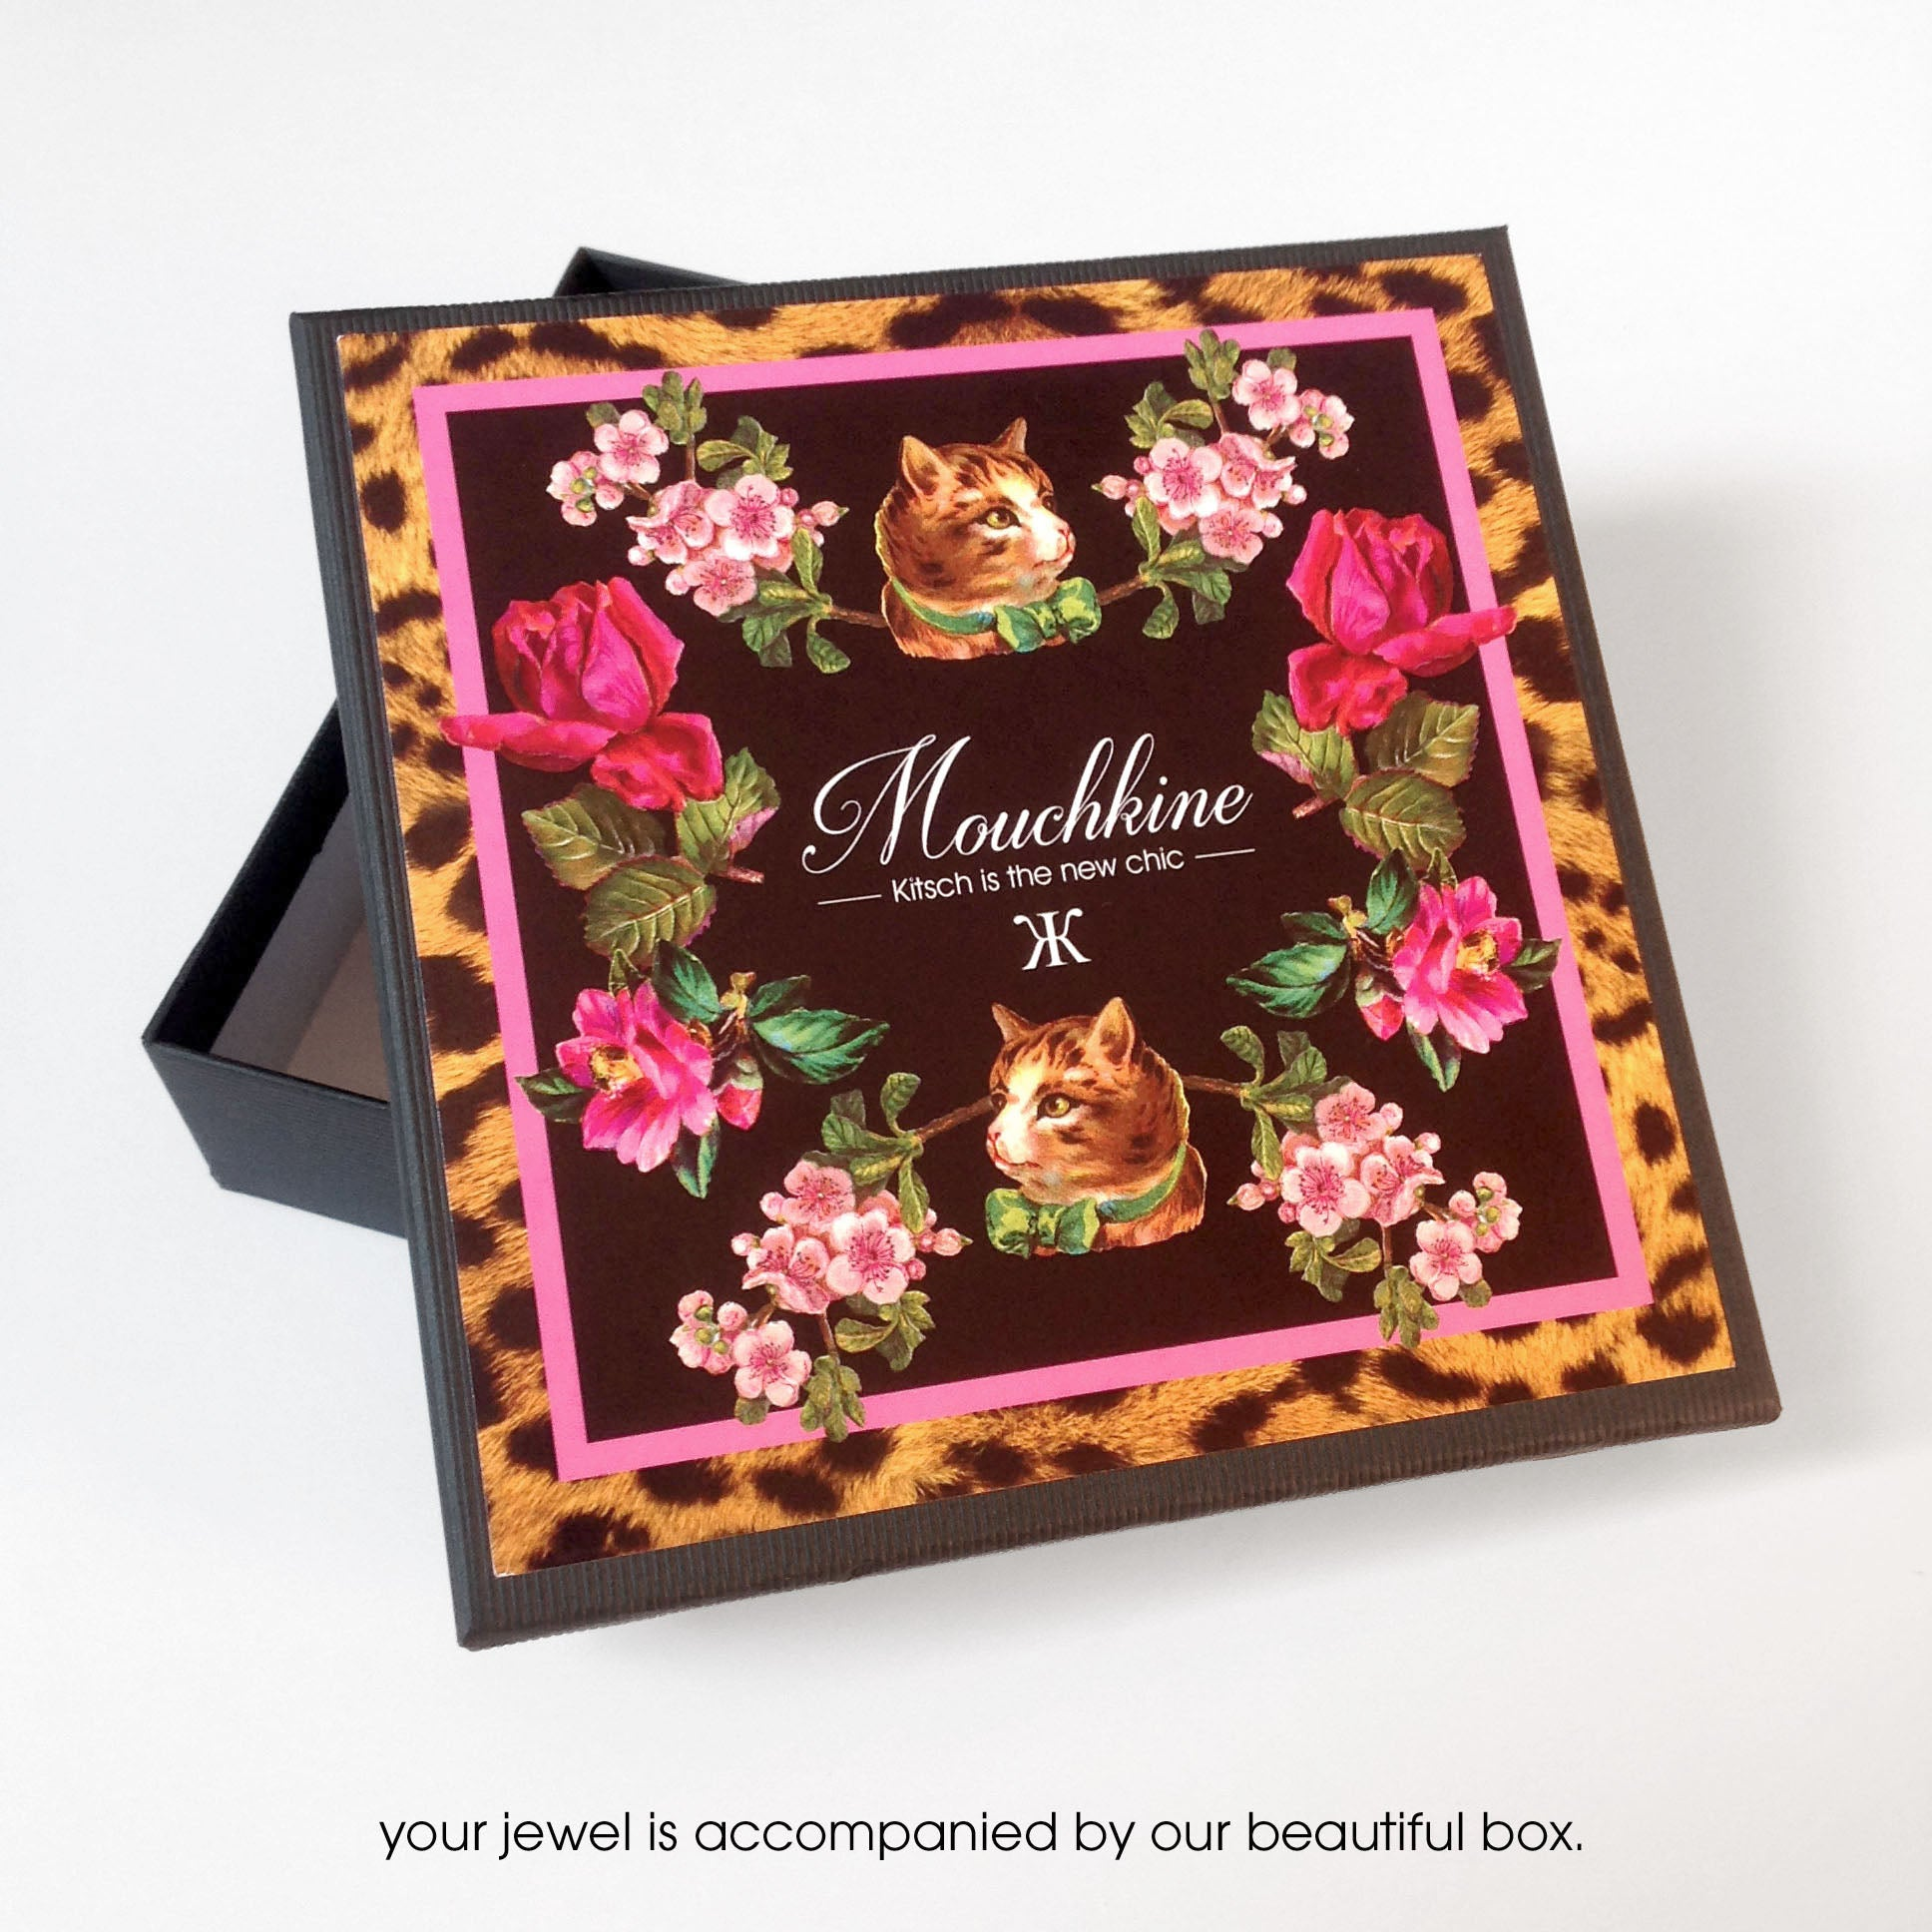 mouchkine jewelry luxury beautiful packaging